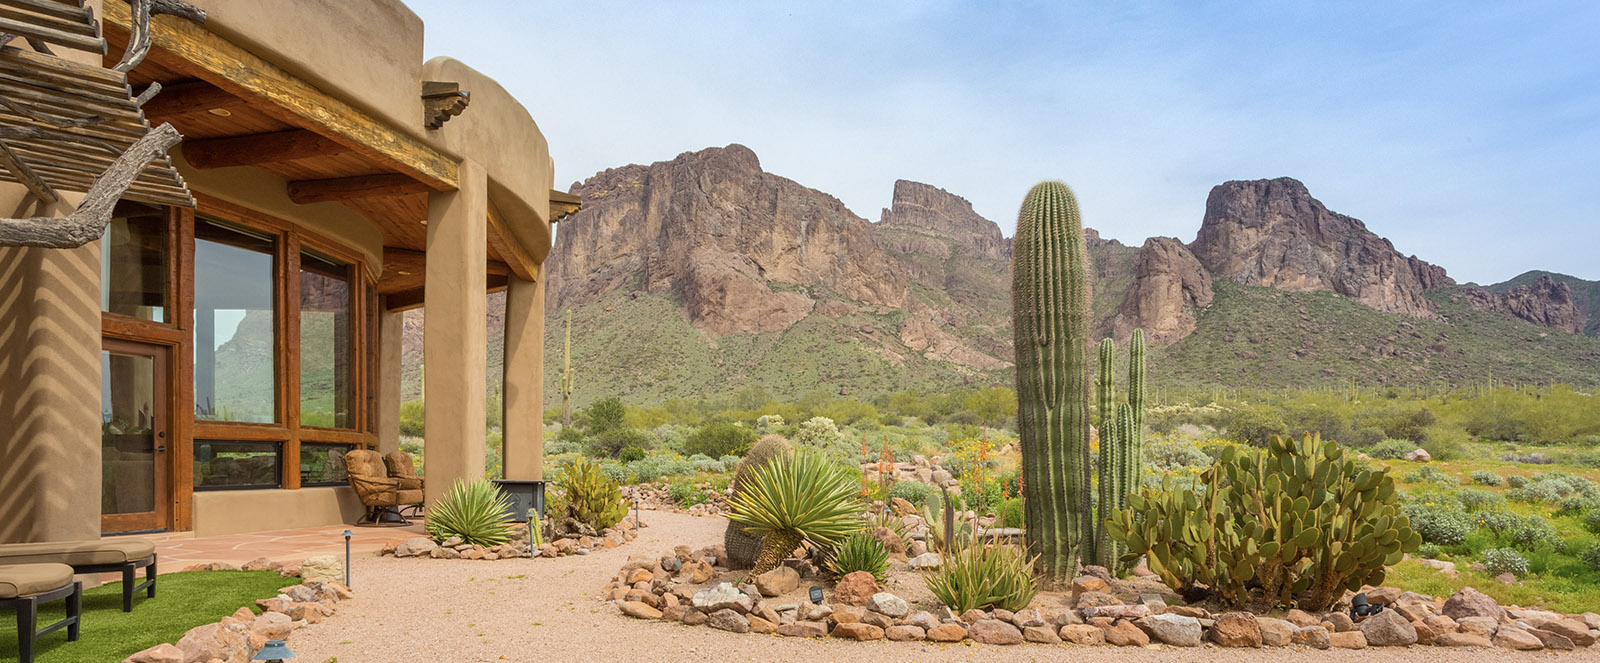 Tour Superstition Foothills with Captain the Dog